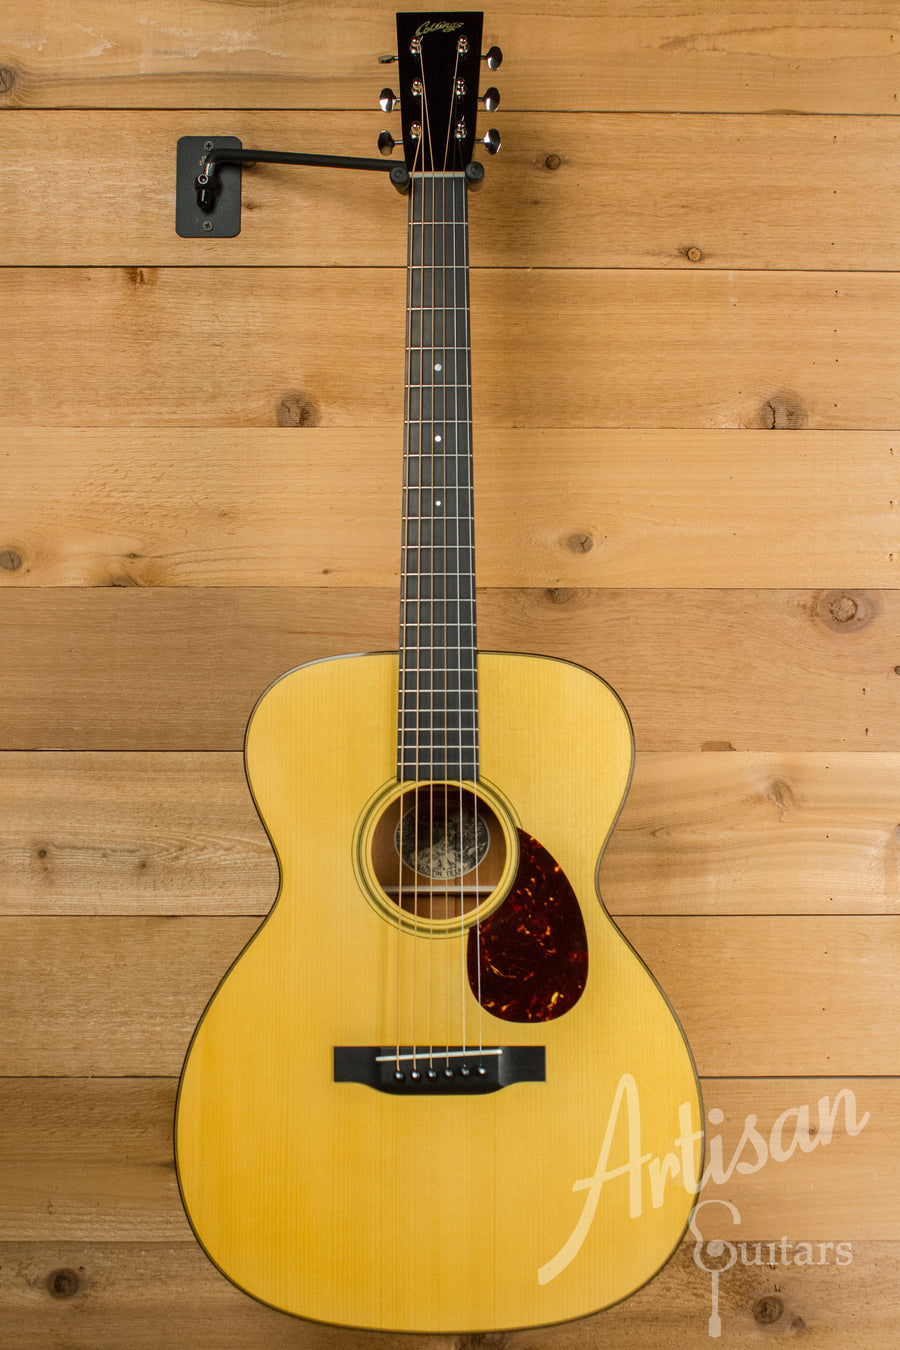 Collings OM1 A VN Custom Adirondack Spruce and Mahogany with Adirondack Braces and Varnish Finish Pre-Owned 2013 ID-11074 - Artisan Guitars